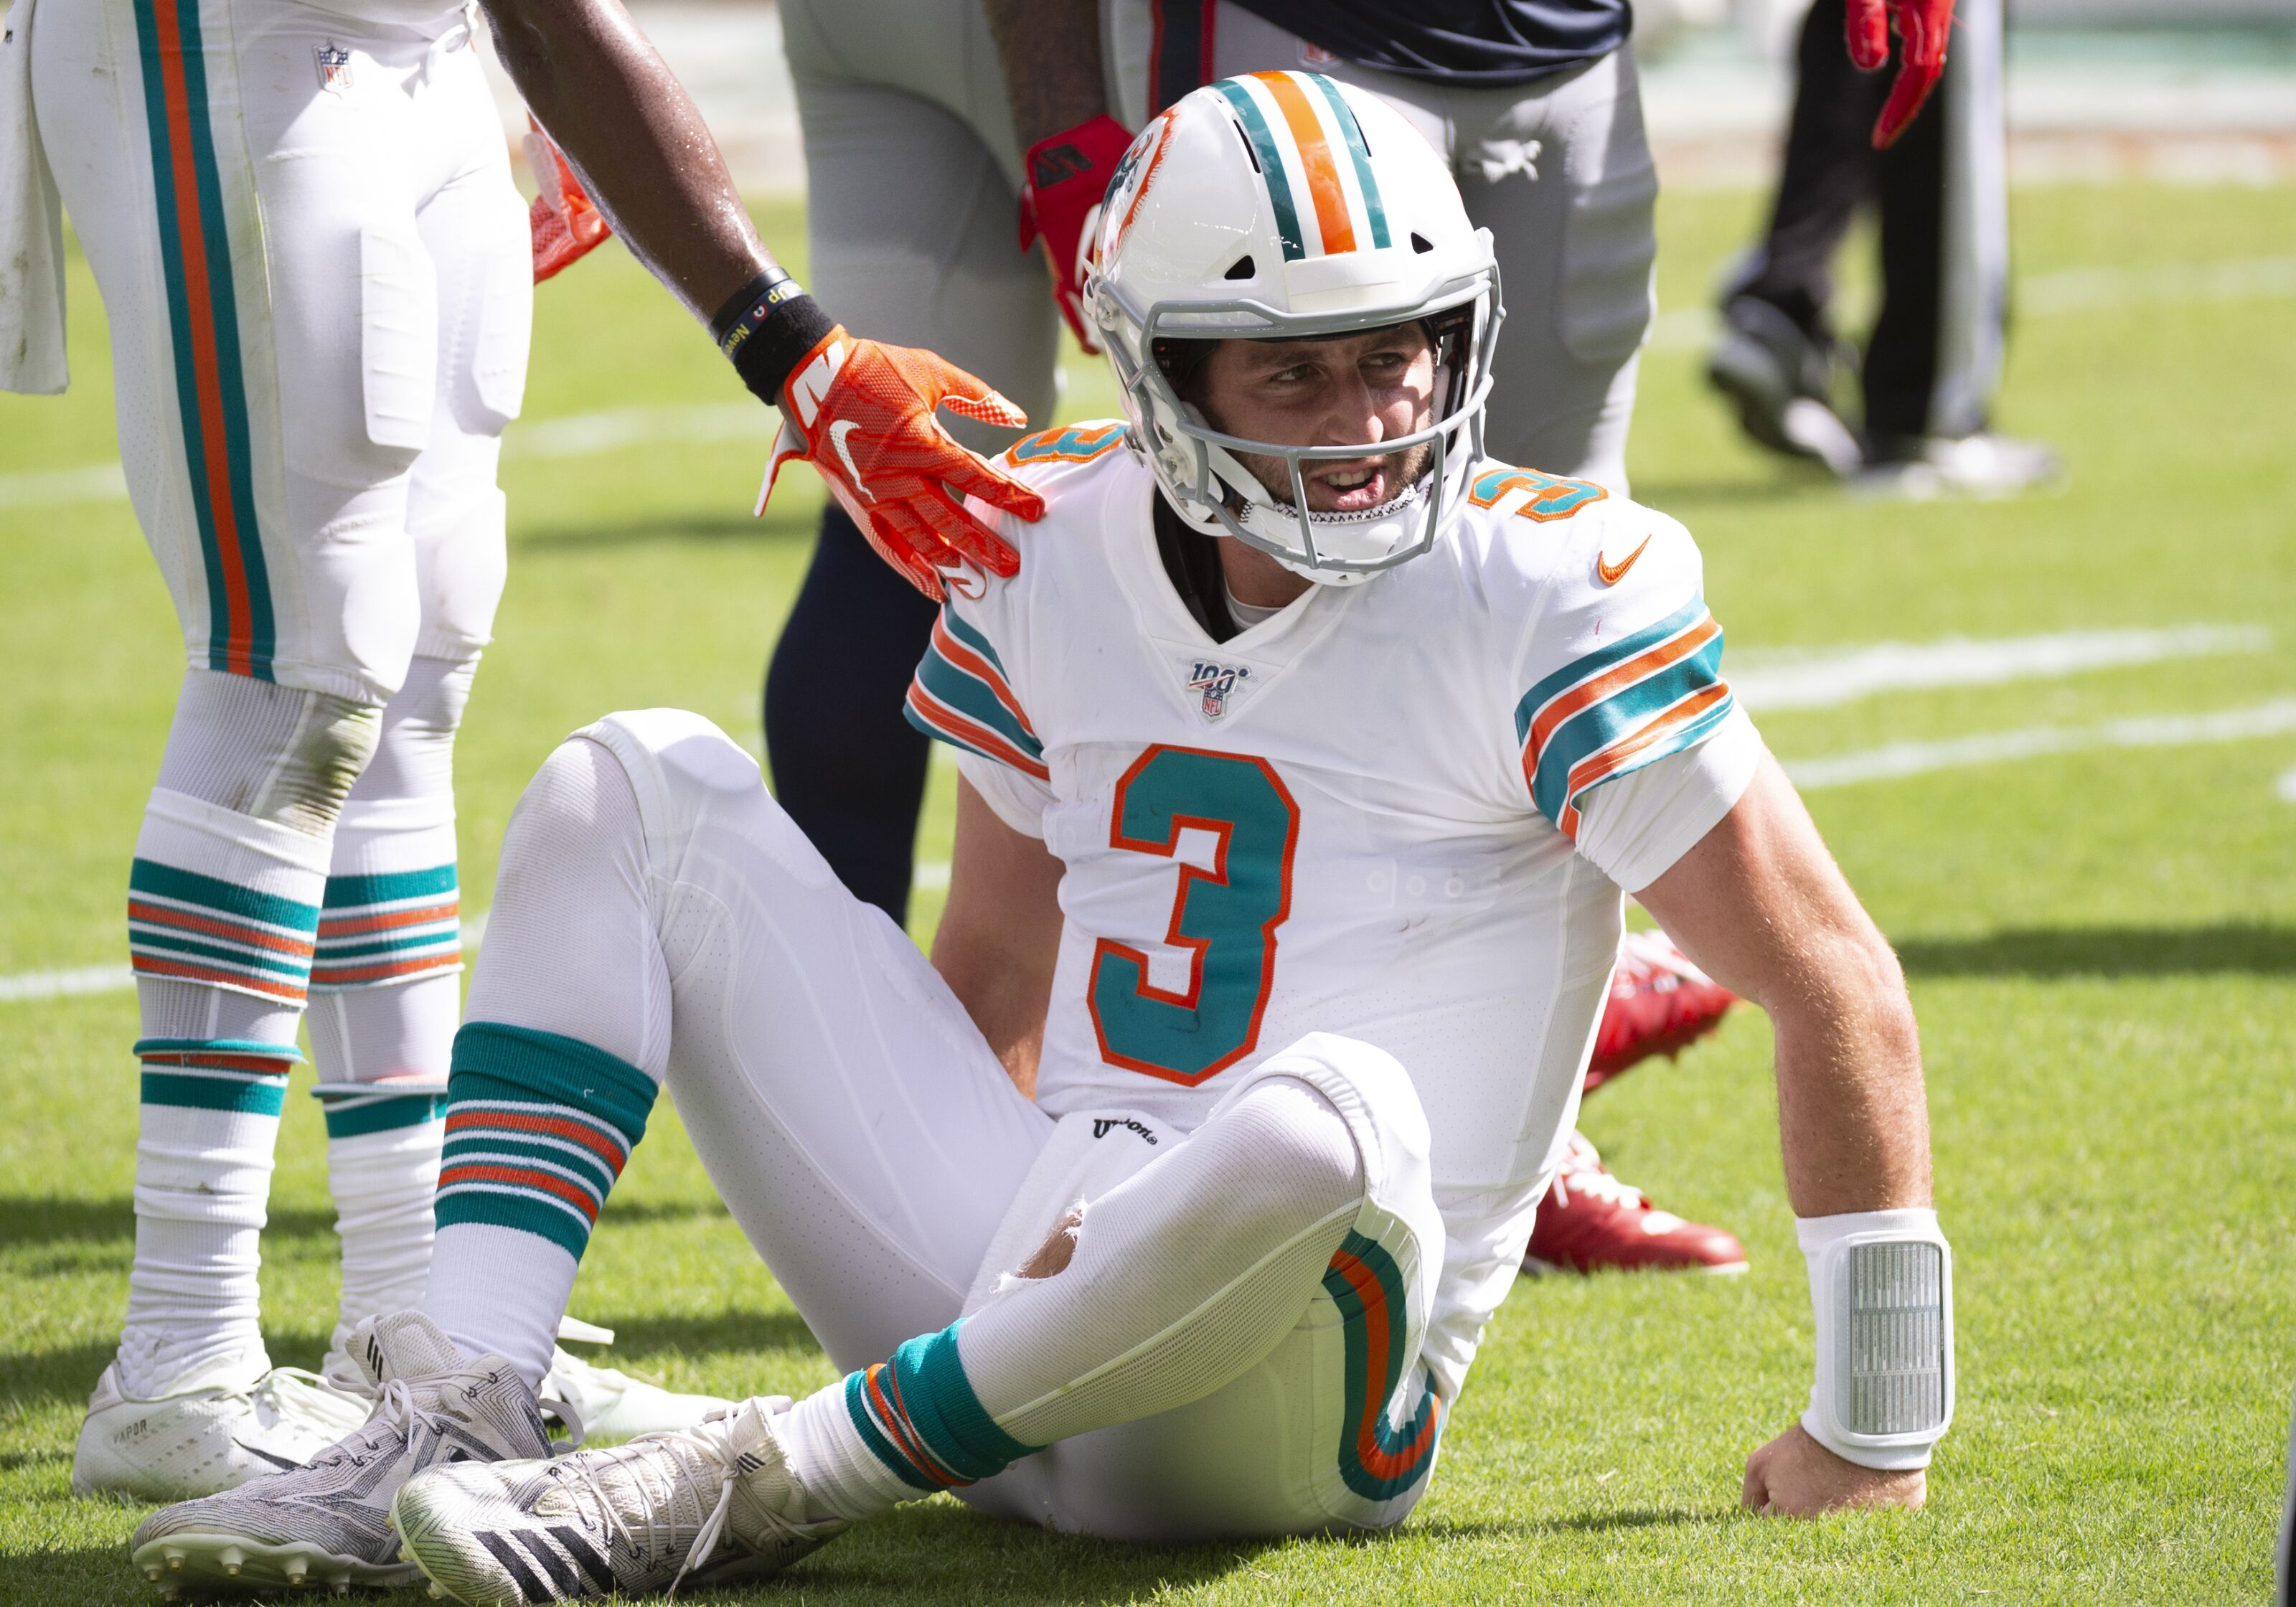 Josh Rosen never had a chance with the Dolphins and their tank job